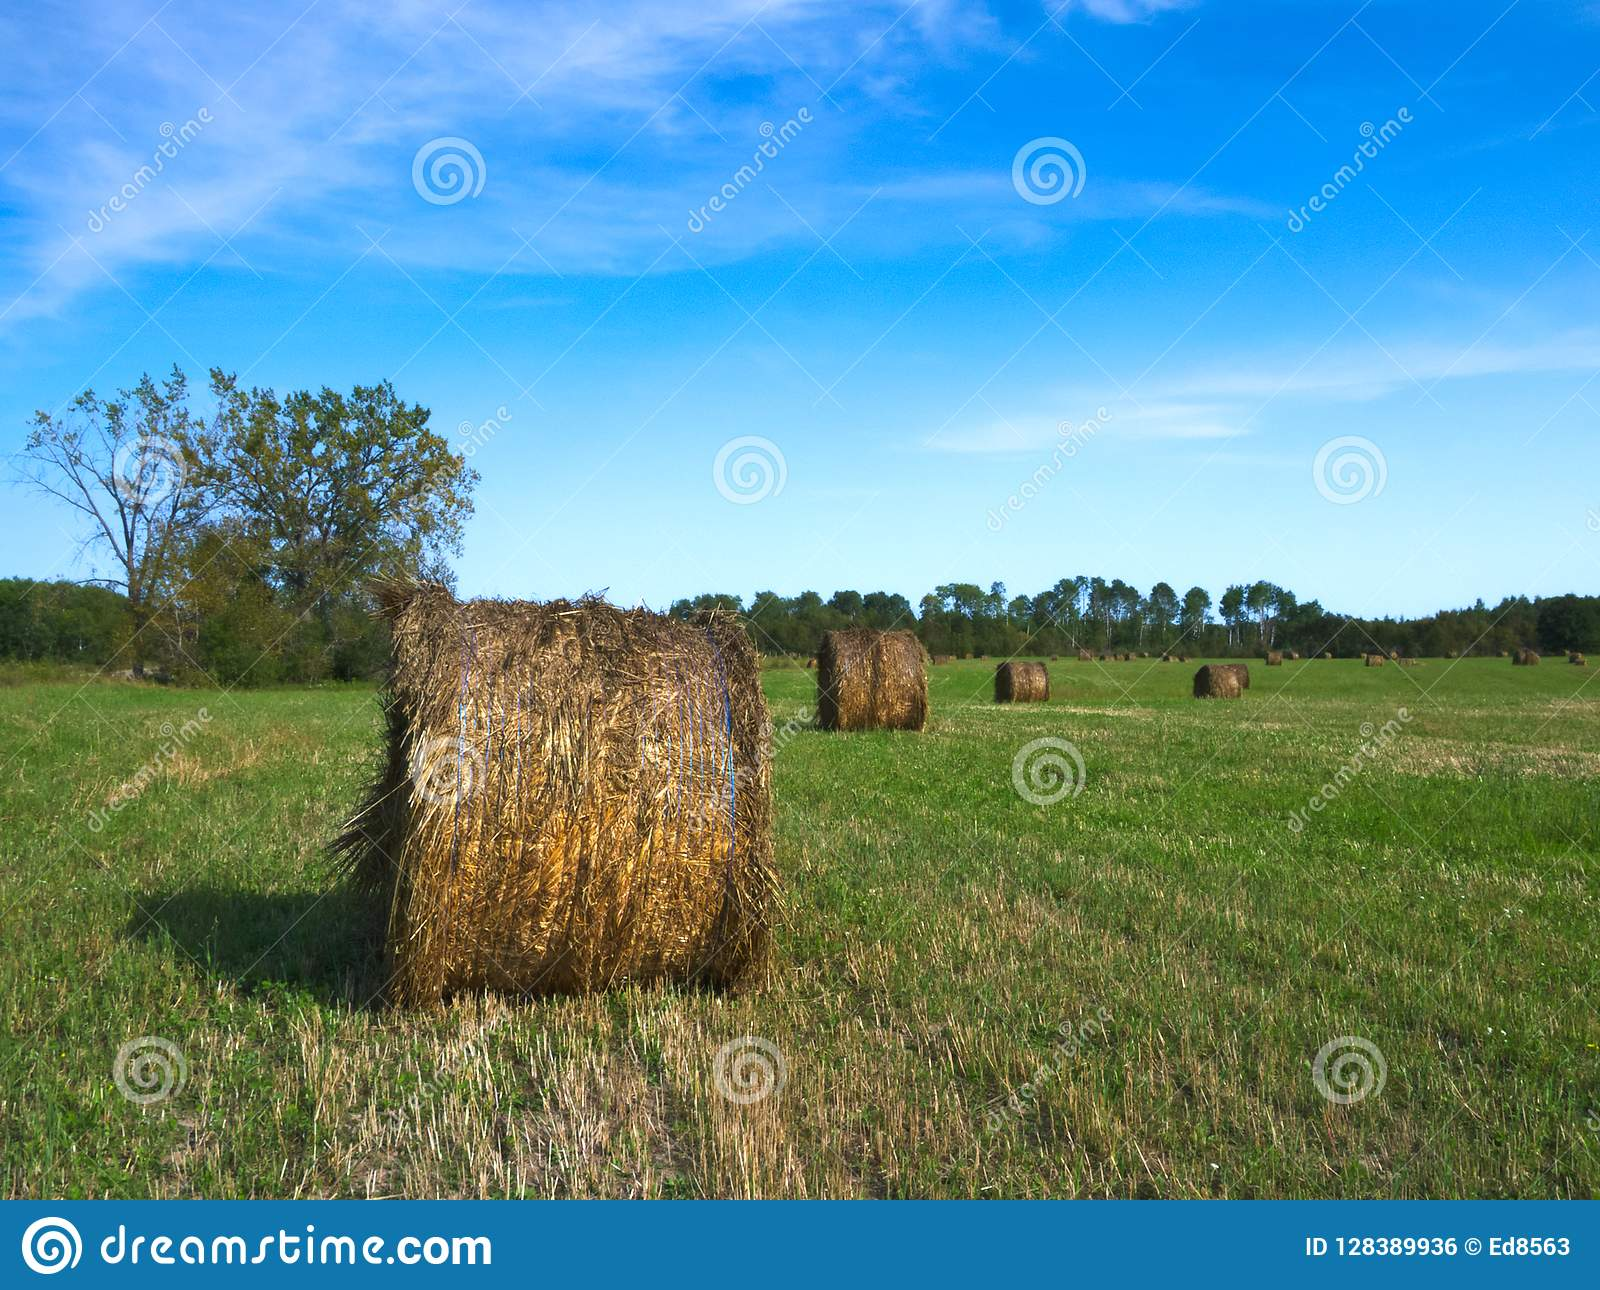 Feed Hay Agricultural Field With Round Bales Of Hay To Feed Cattle In